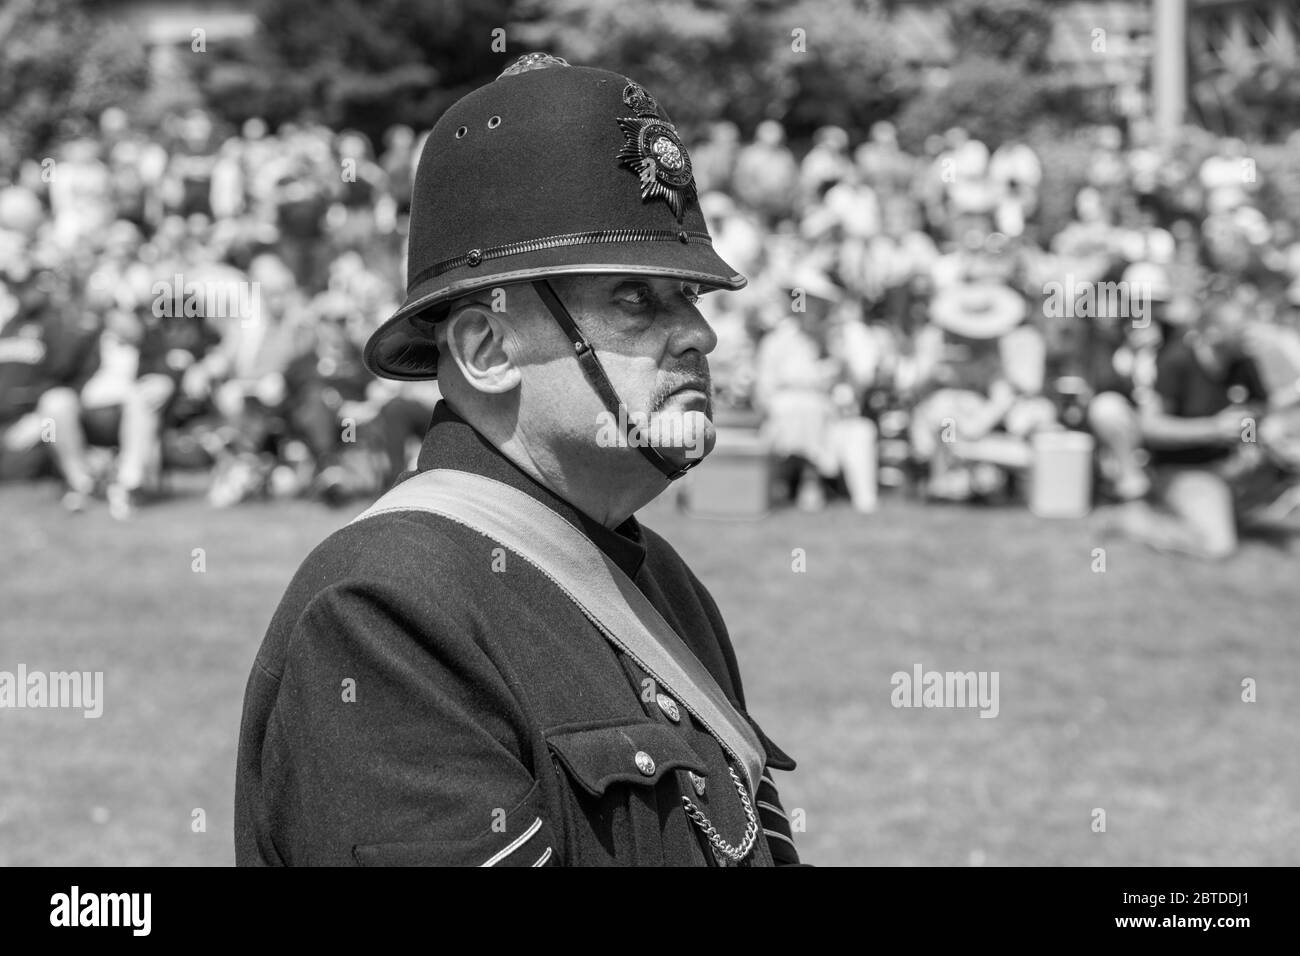 1940's style Policeman at the annual 1940's Day at The Valley Gardens, Harrogate, North Yorkshire, England, UK. Stock Photo